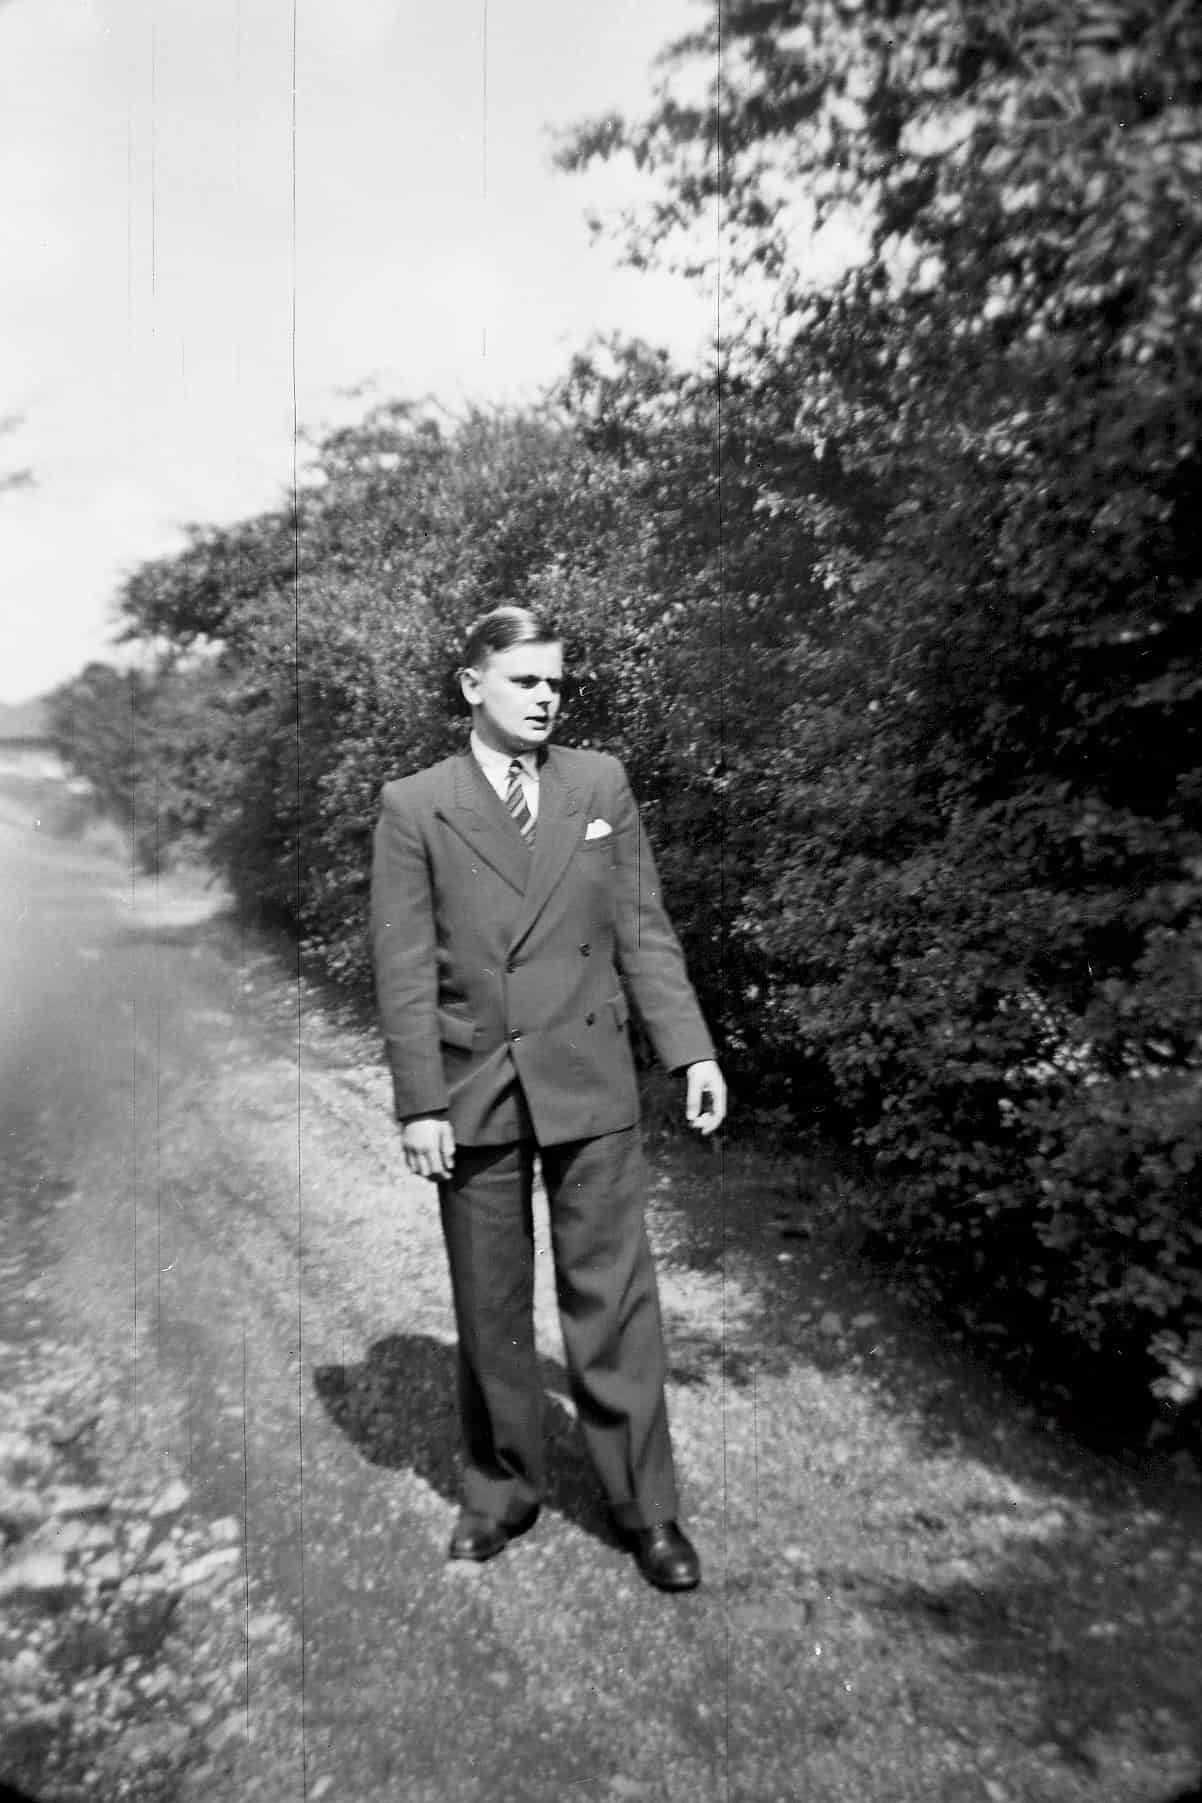 My brother John with his Sunday best walking at the back of our house at Wallace road about 1952.